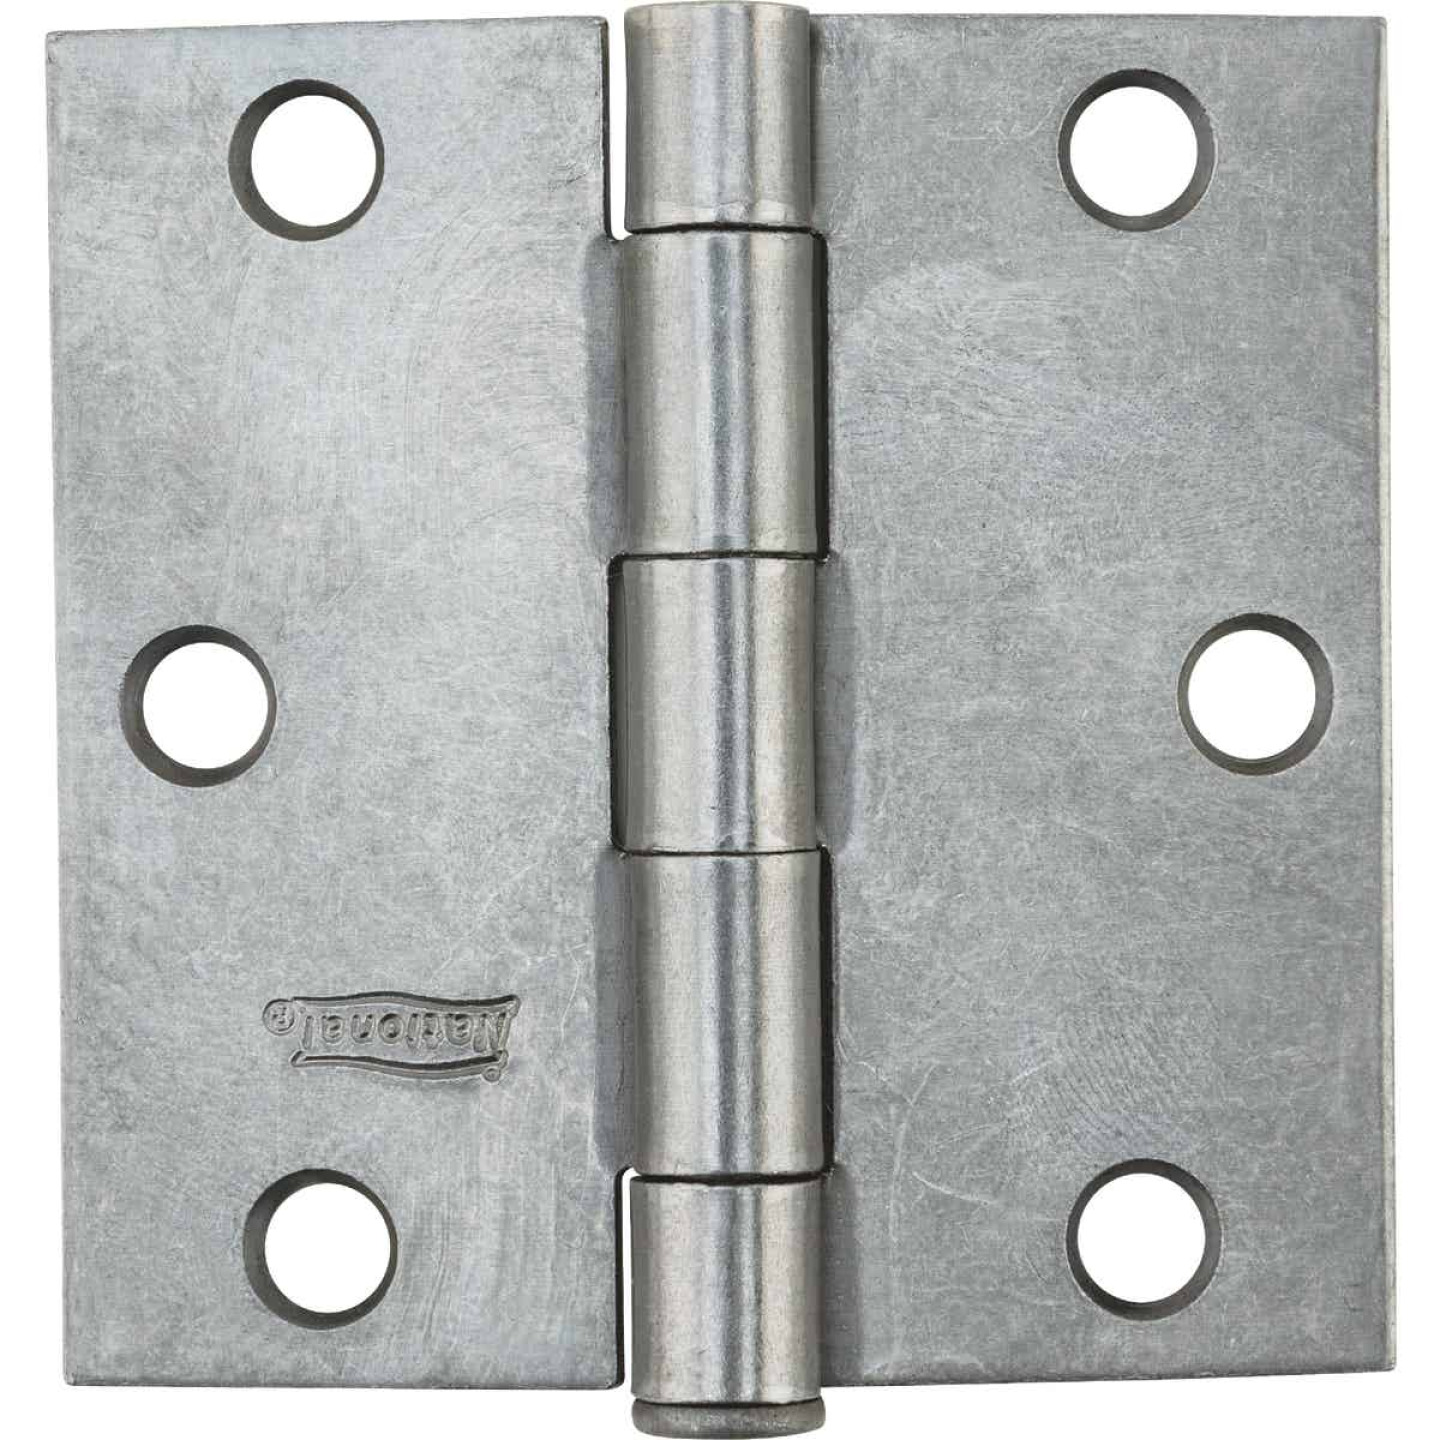 National 3 In. Square Plain Steel Broad Door Hinge Image 2